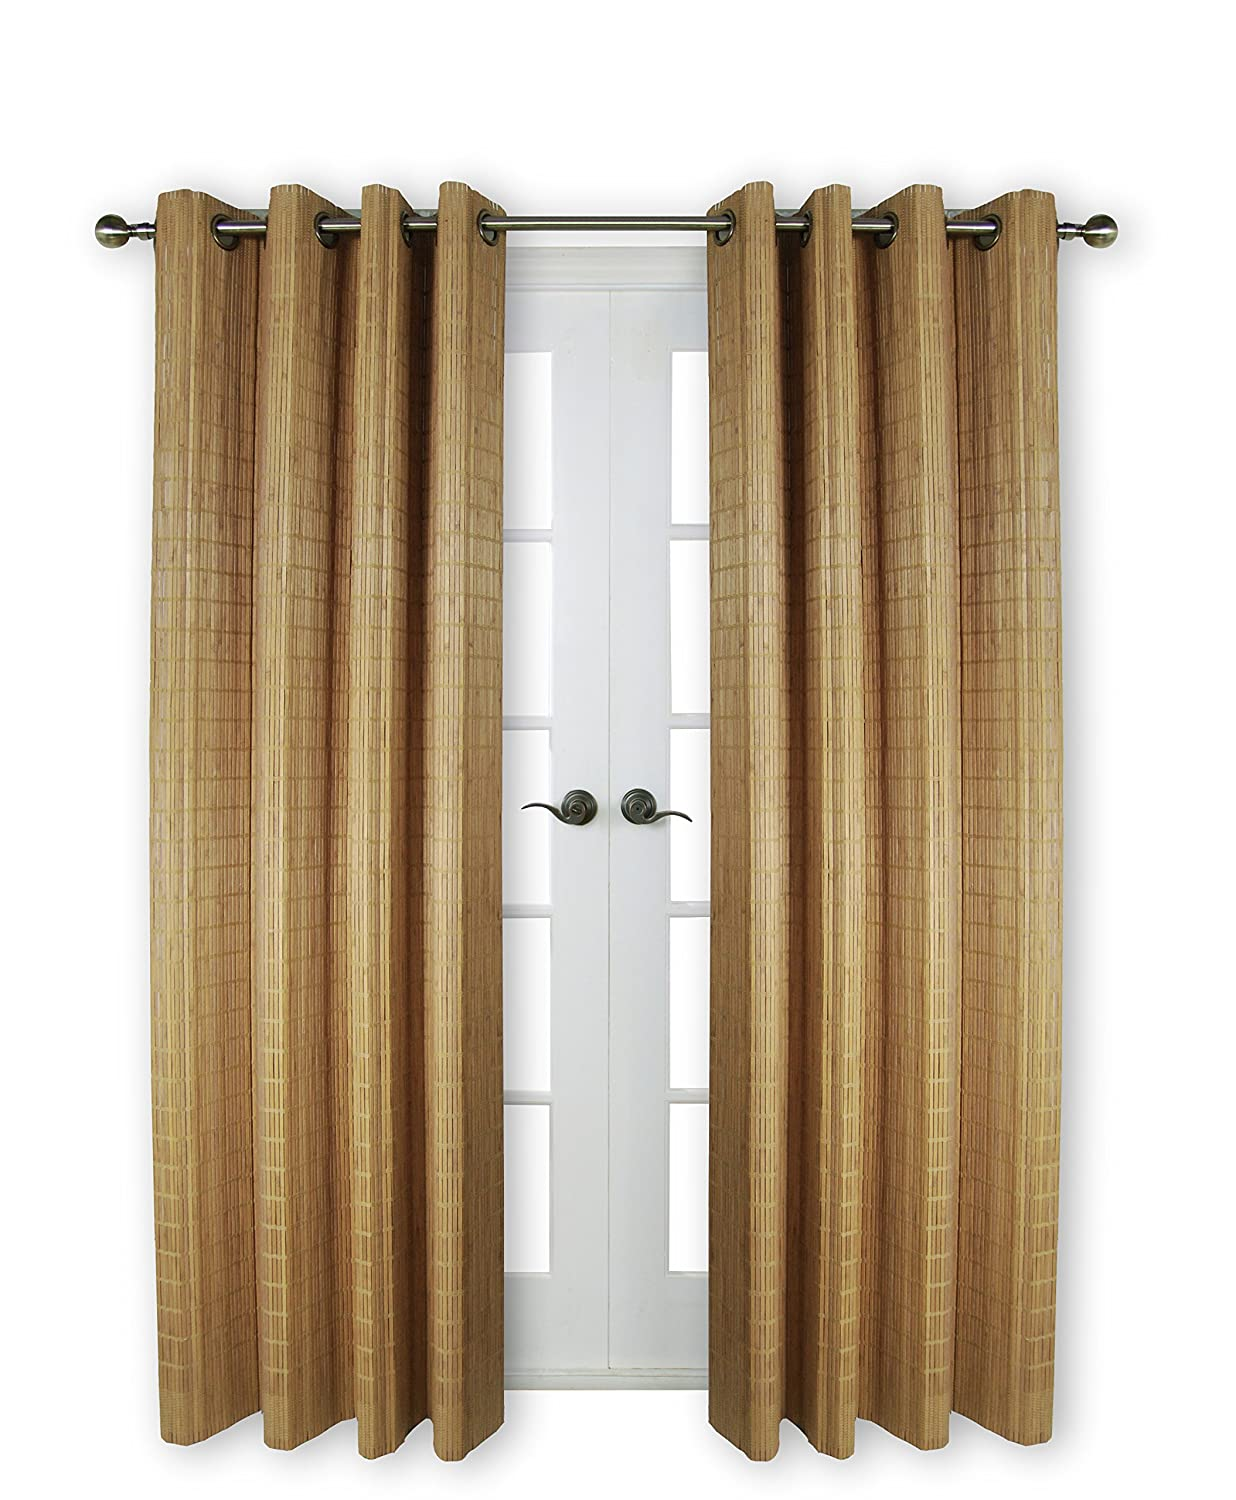 Versailles Home Fashions BPU144884-9 Bamboo Wood Curtain Panel with Grommets, 48-Inch x 84-Inch, 09 Teak Versailles Home Fashions Inc